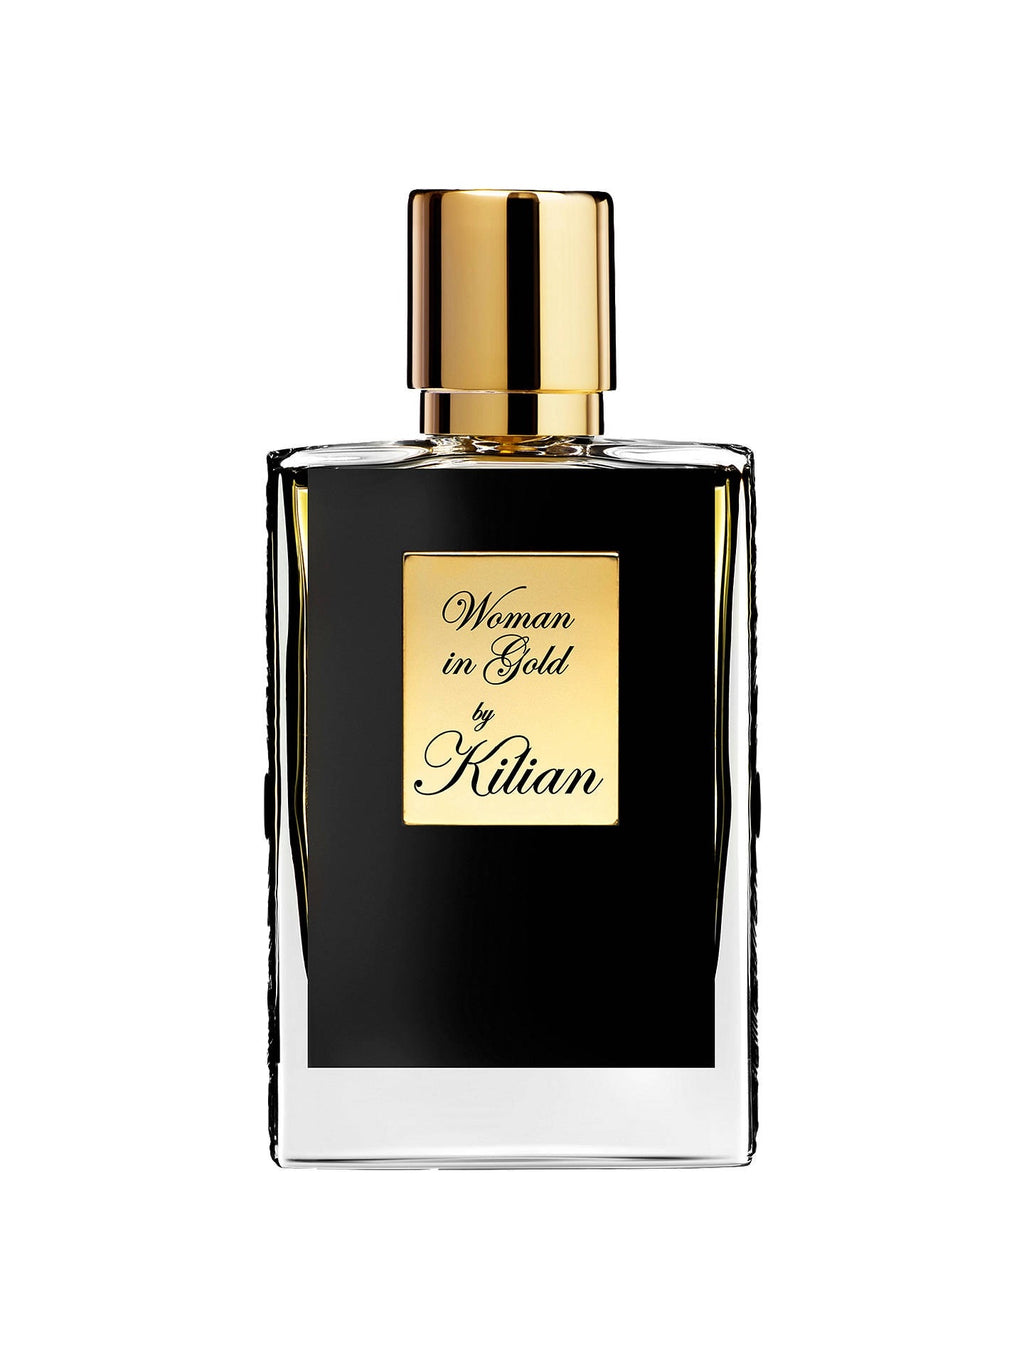 Woman In Gold Eau de Parfum by kilian